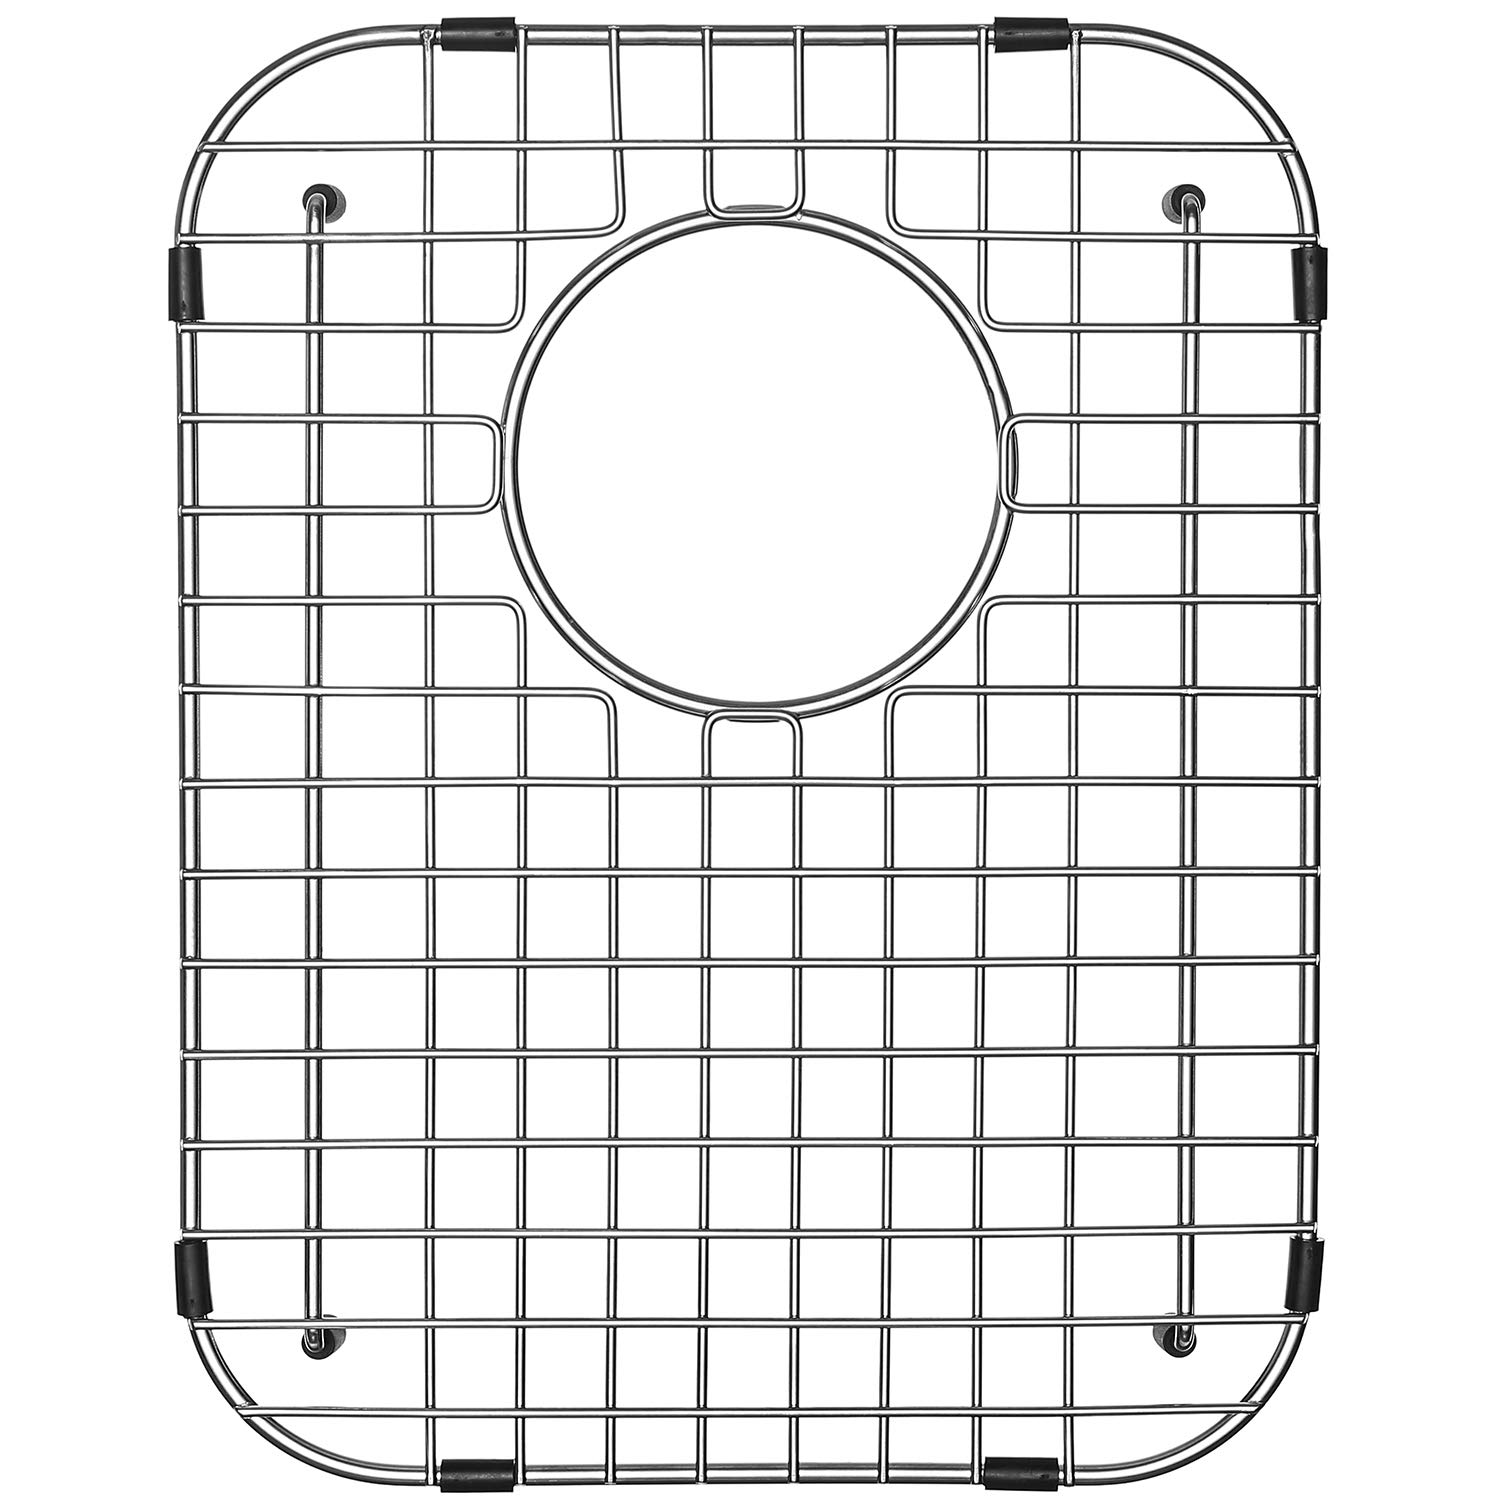 Serene Valley Sink Protector and Kitchen Sink Bottom Grid NDG1317, 304 Premium Stainless Steel, dim 11 7/8'' x 15 3/8'' by Serene Valley